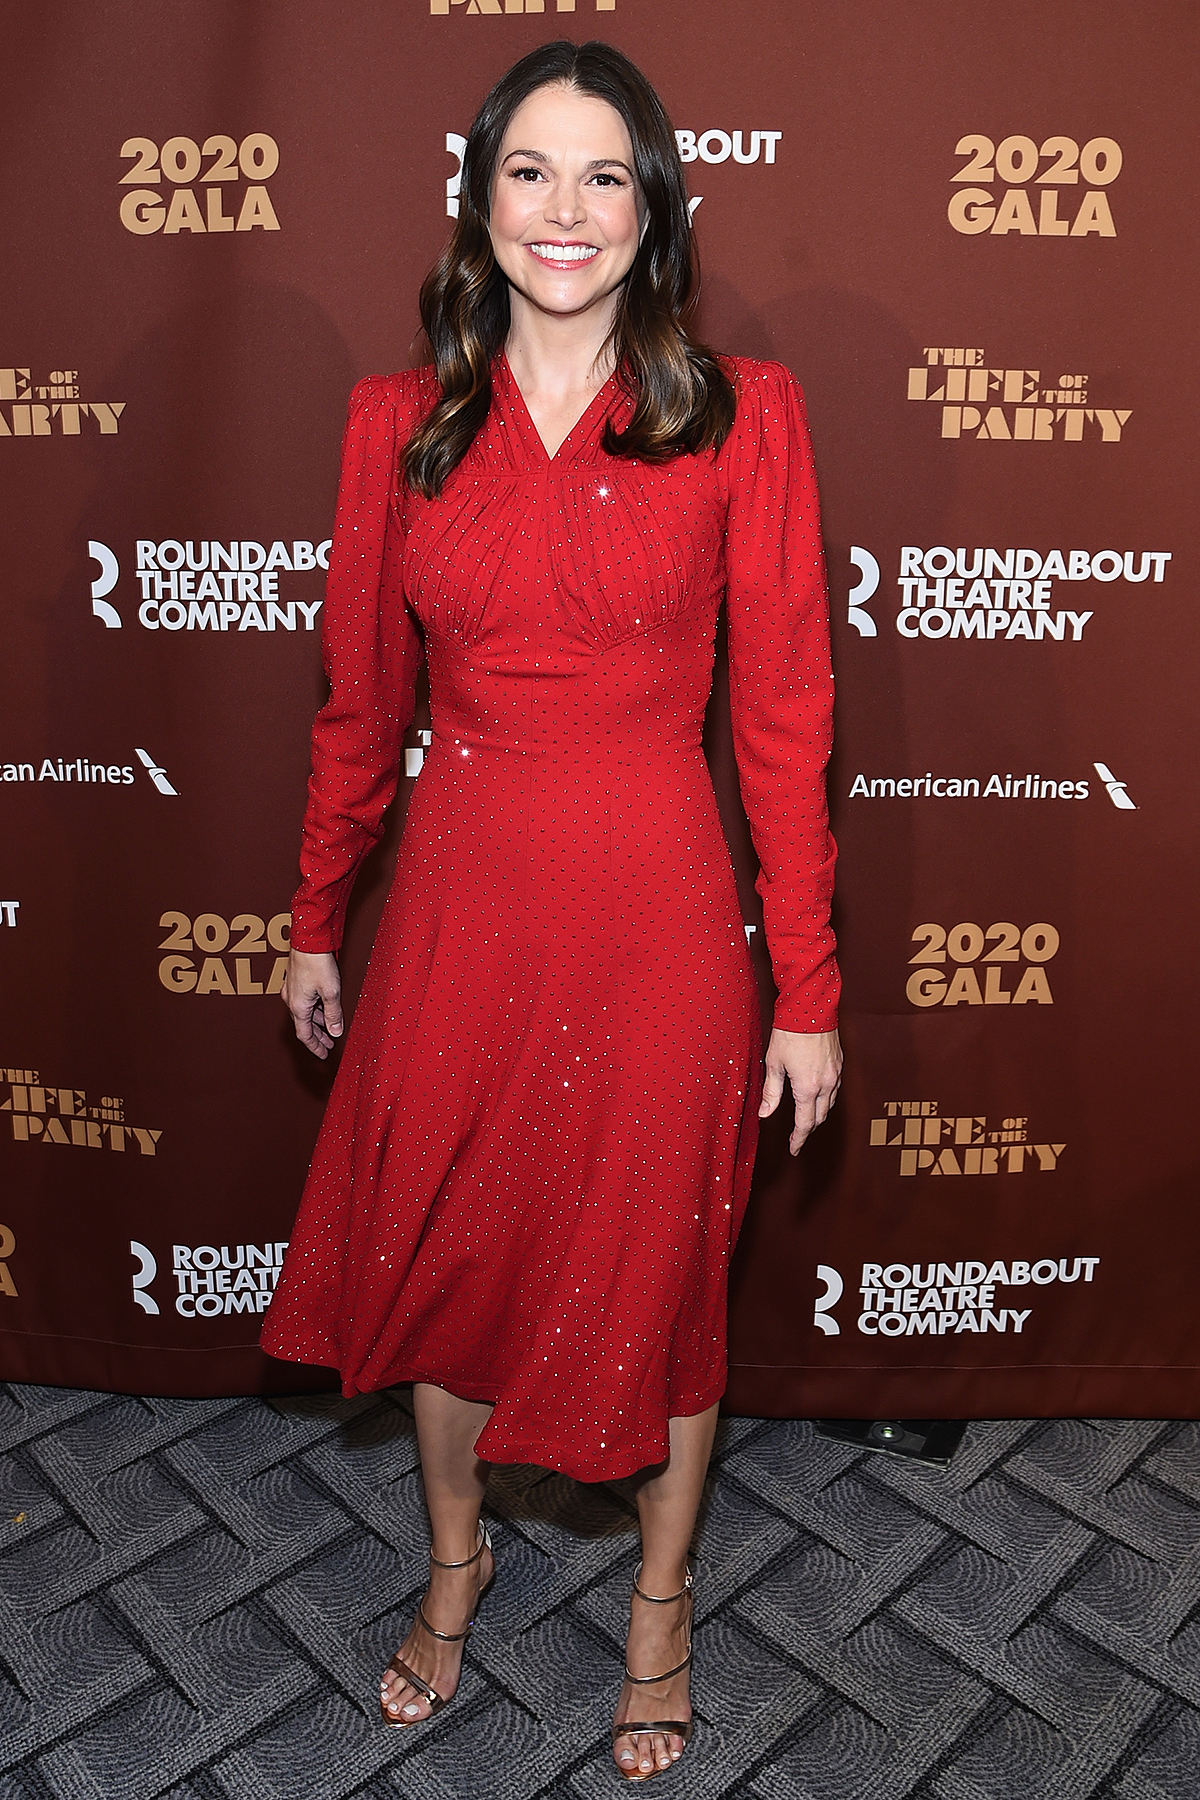 Sutton Foster attends the Roundabout Theater's 2020 Gala at The Ziegfeld Ballroom on March 02, 2020 in New York City.